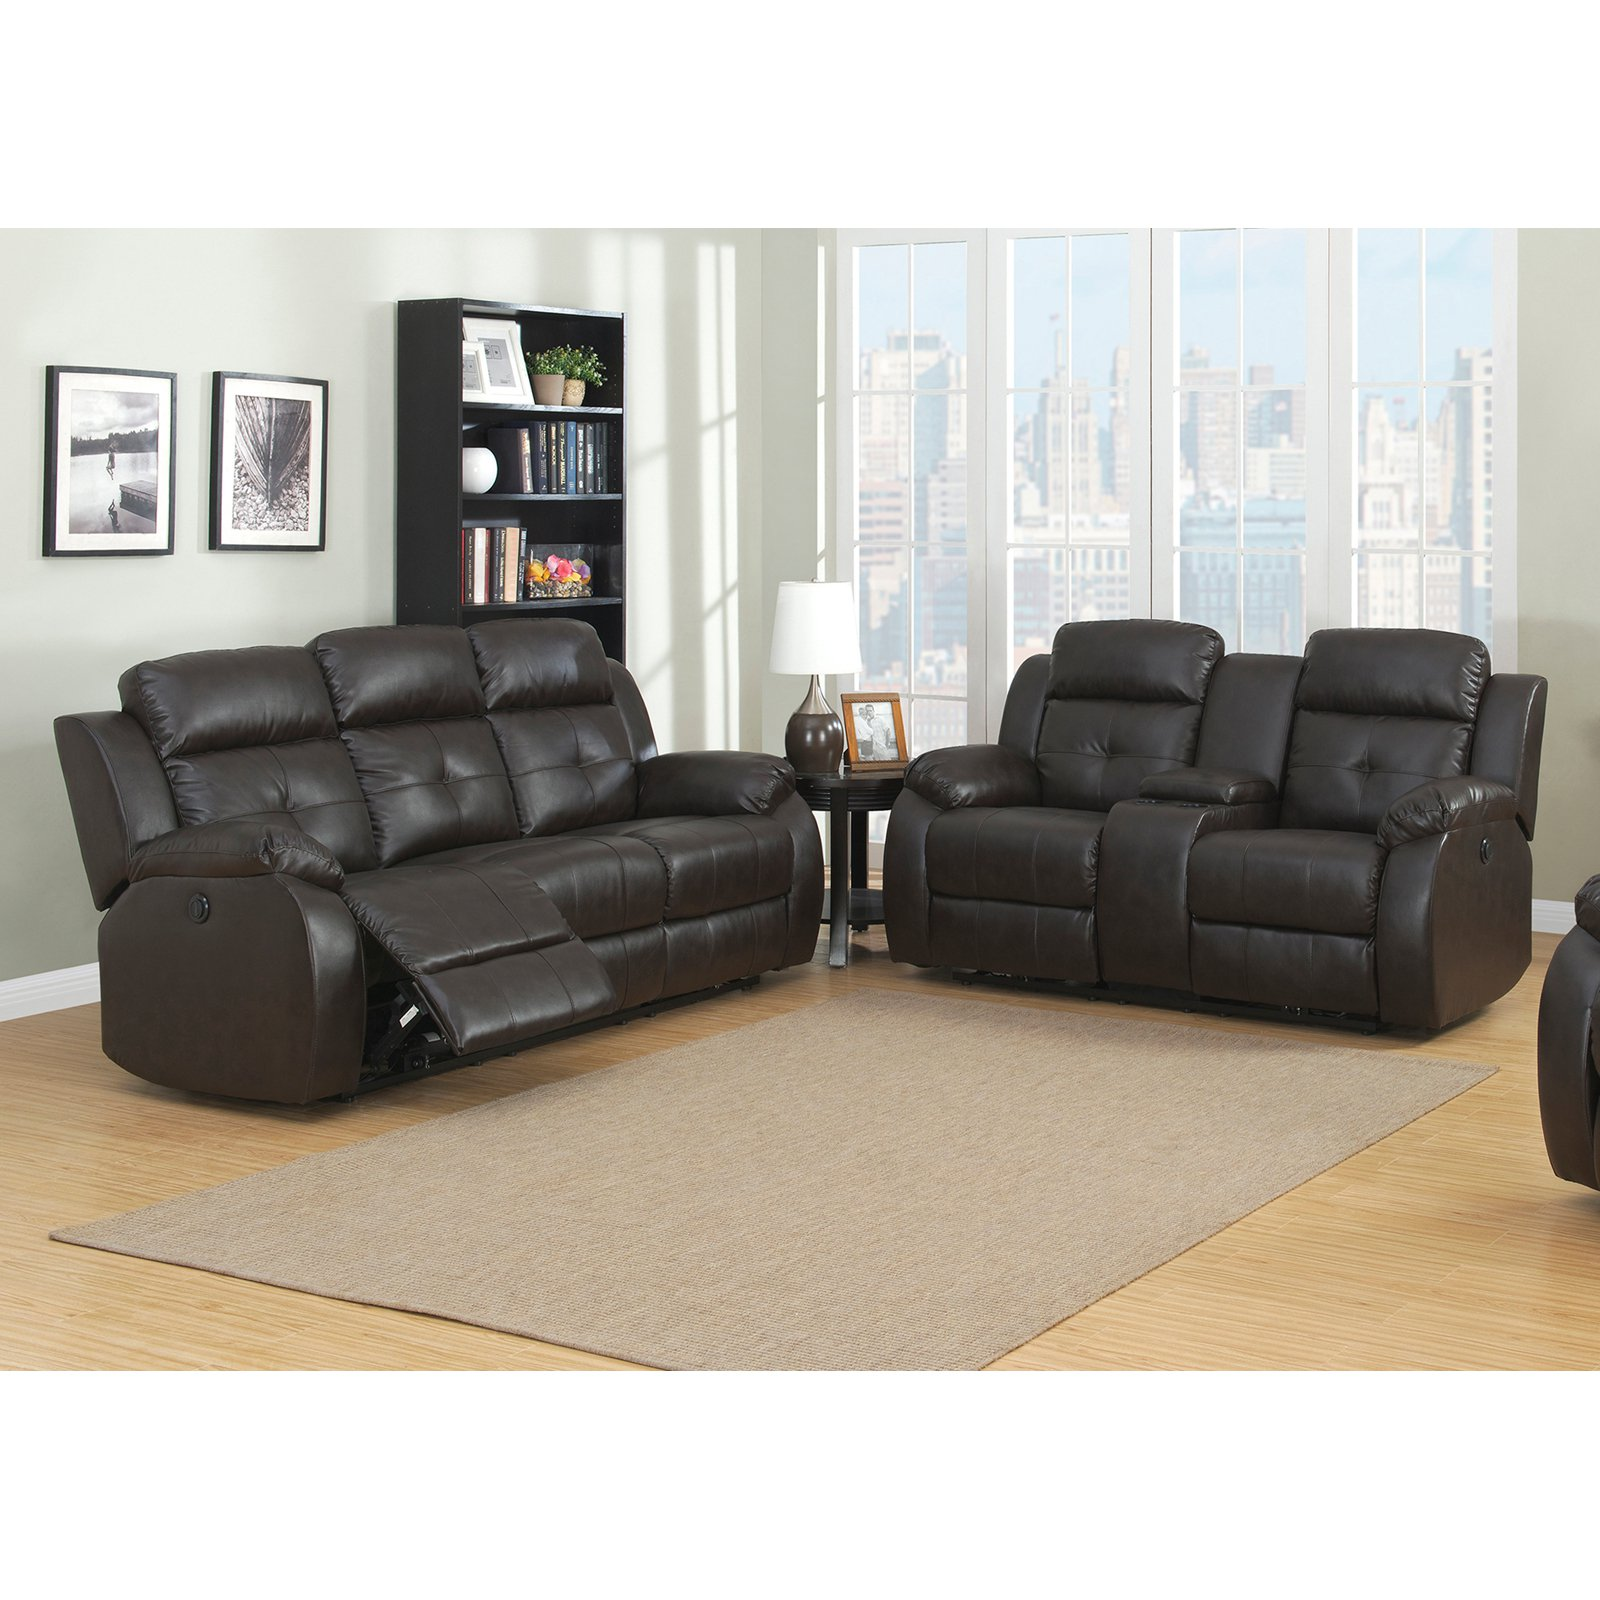 Christies Home Living Troy Collection 2 Piece Power Reclining Living Room Sofa Set